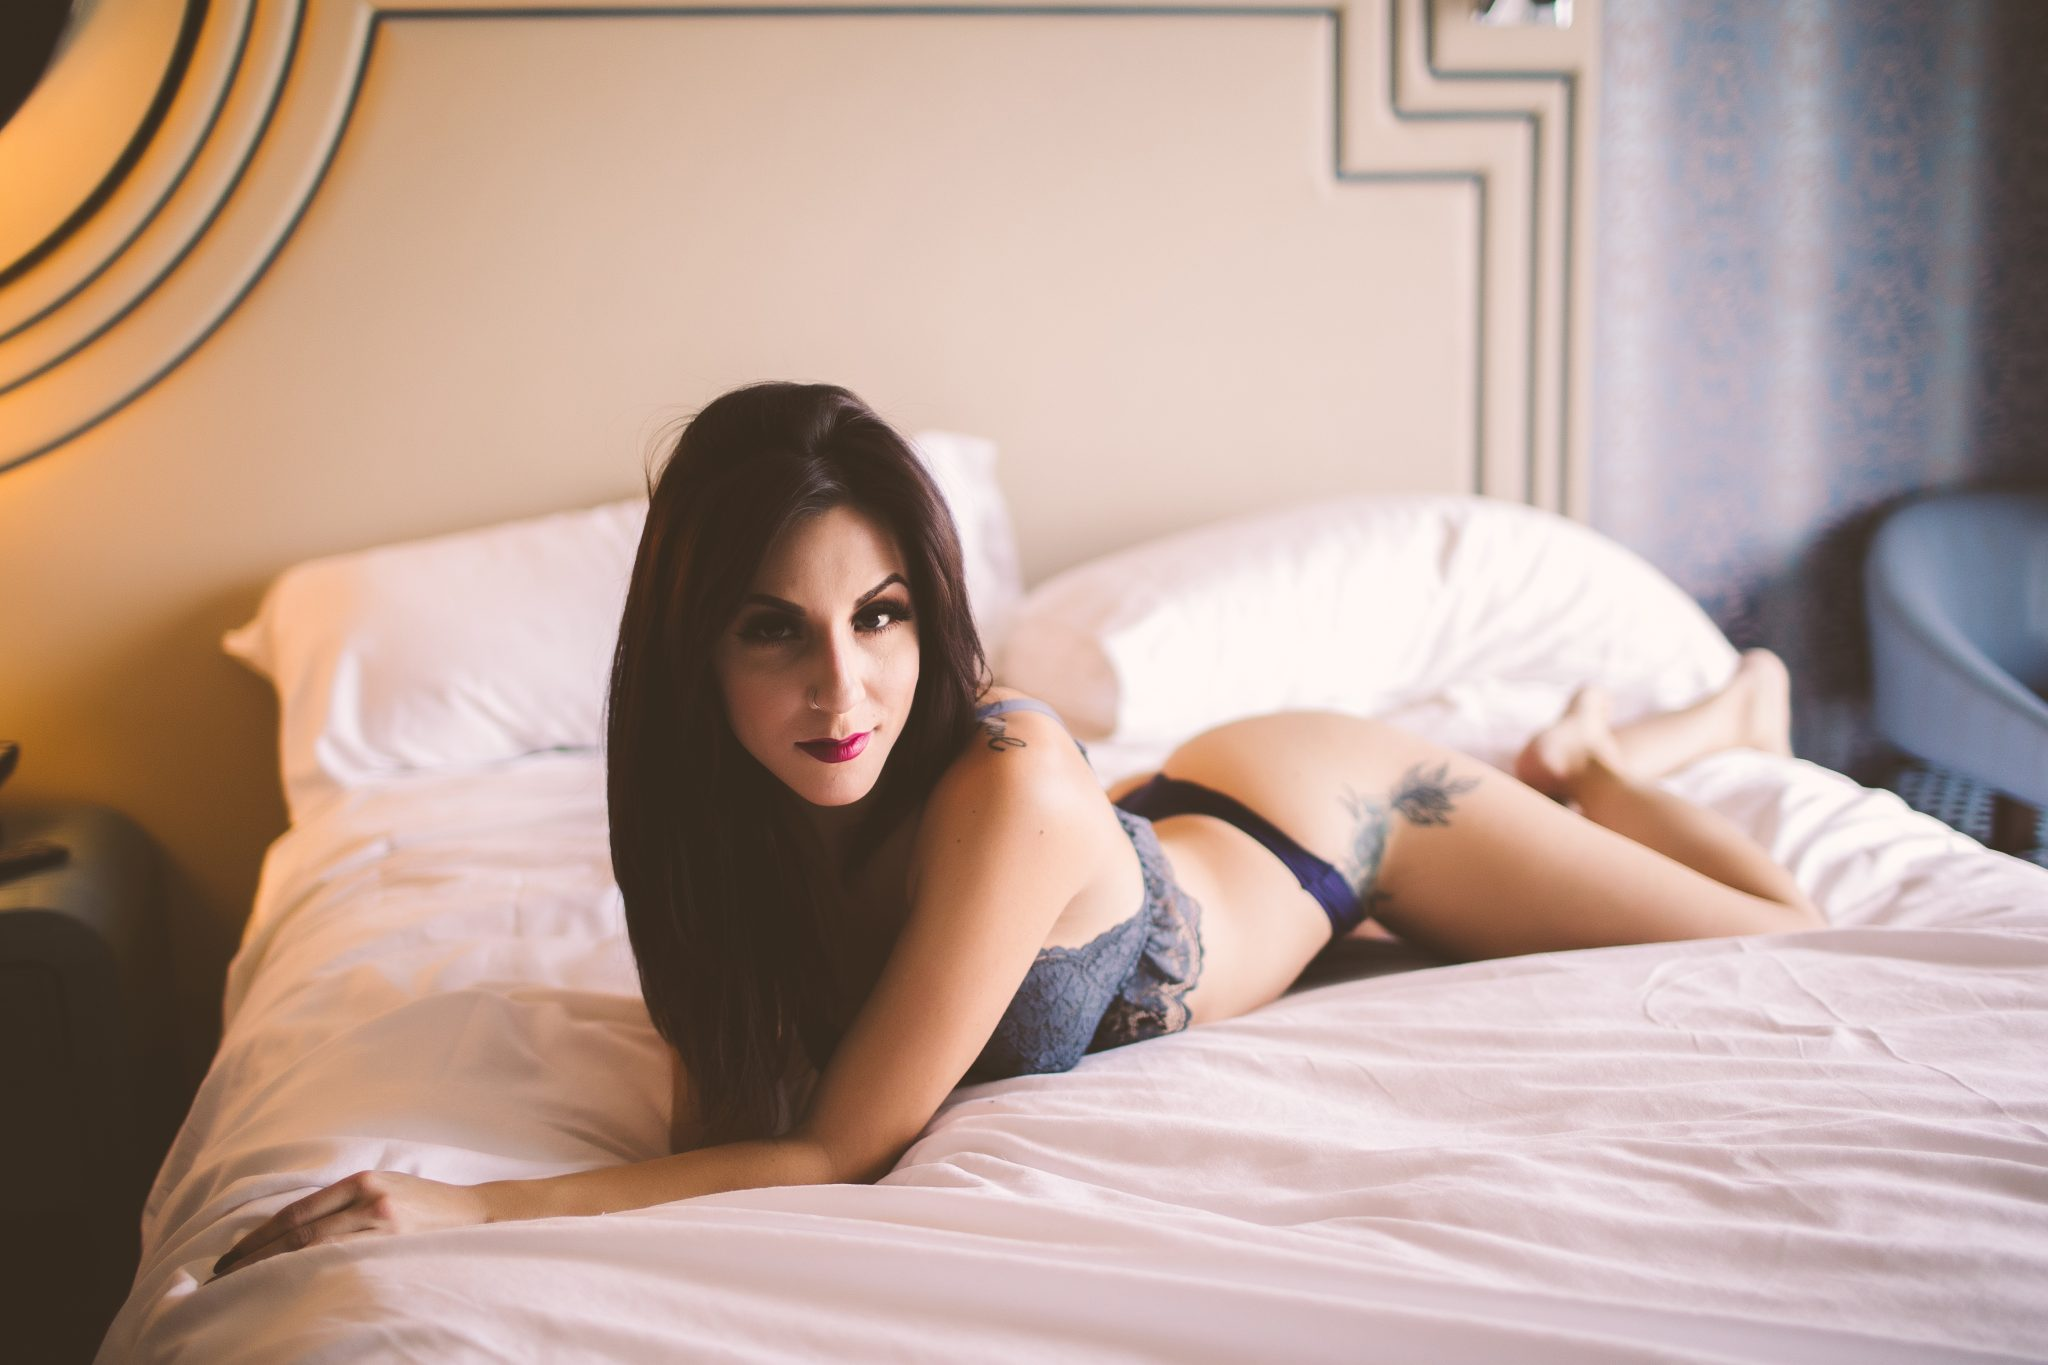 Tattooed model laying on a bed